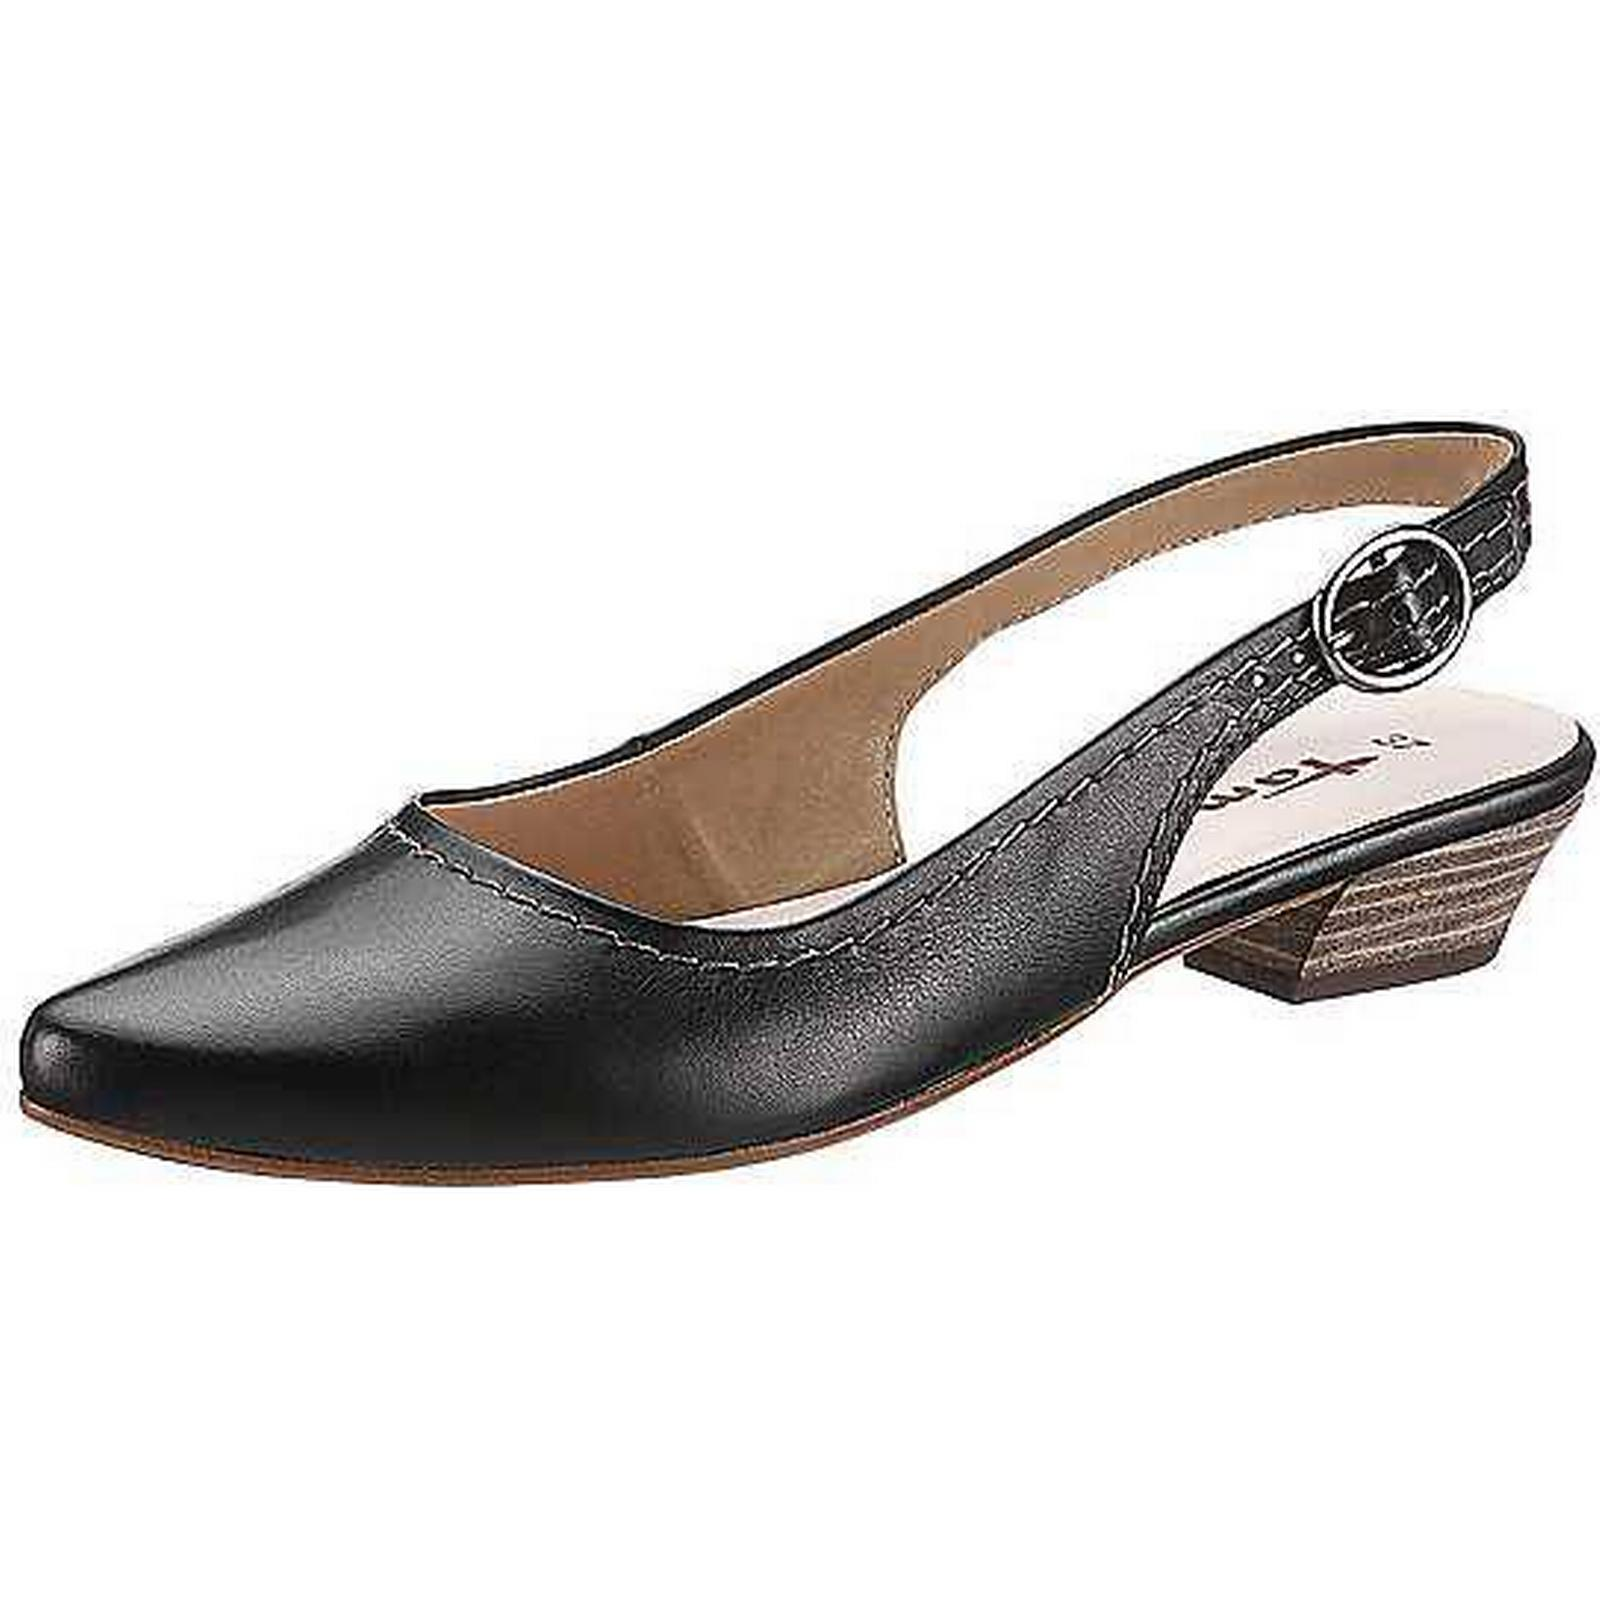 Tamaris Slingback Shoes by by by Tamaris<Mr/Ms<Discount 44d191